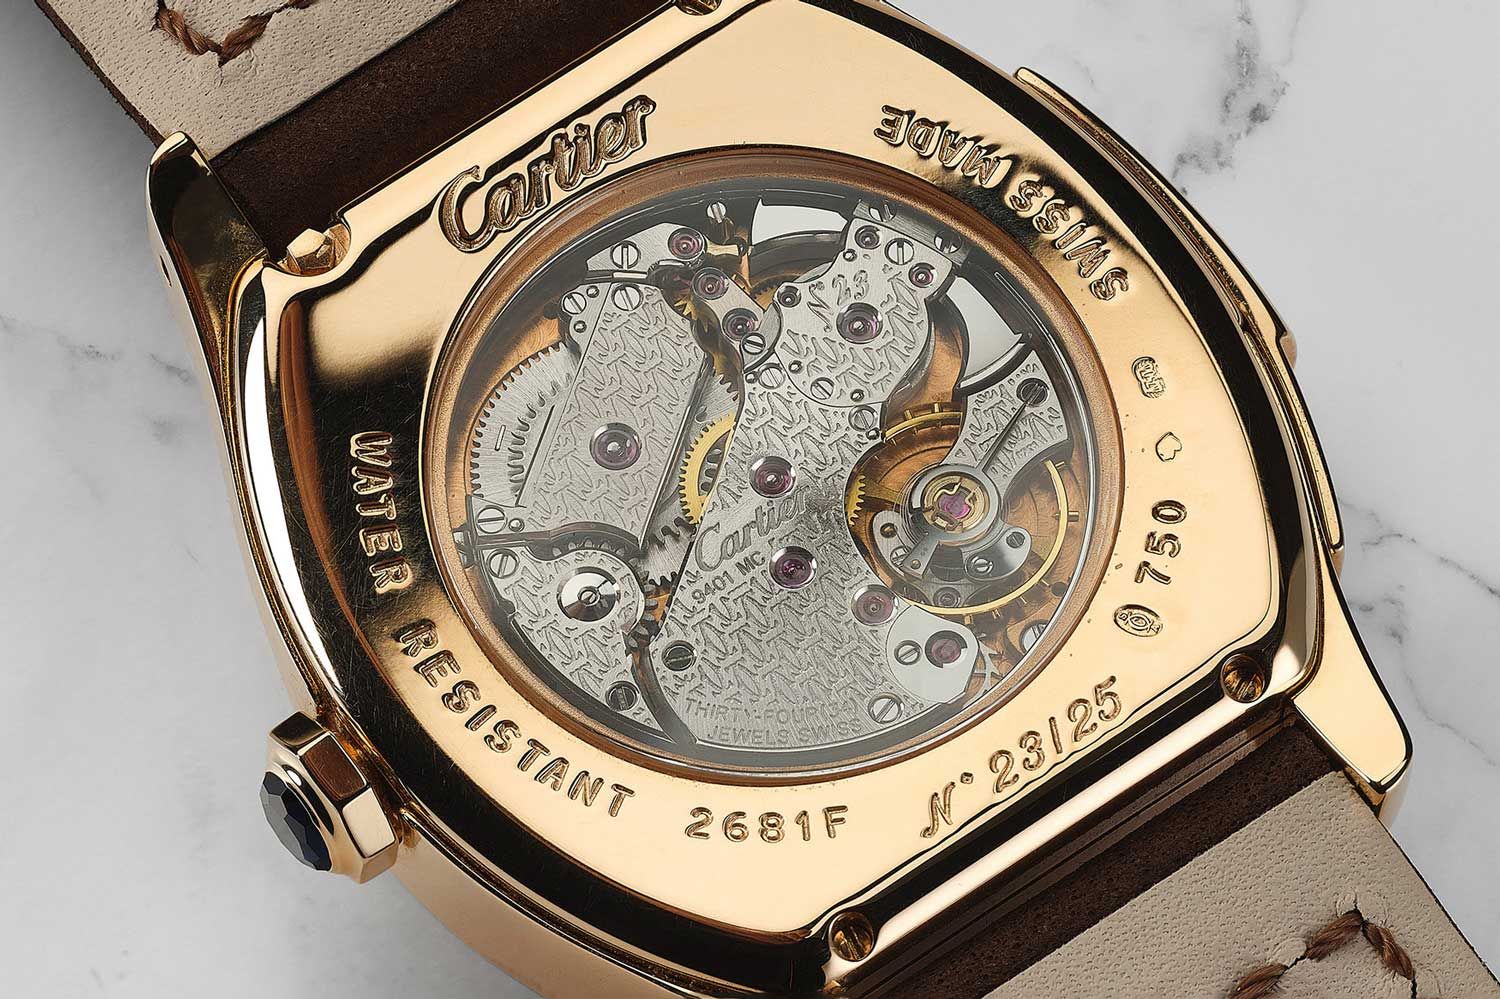 No. 23 of 25 pieces of the yellow gold Tortue Minute Repeater that sold with Phillips at their November 2020 Geneva sale for CHF 85,680; picture here is the fact that this was powered by the Calibre 9401MC (Image: phillips.com)